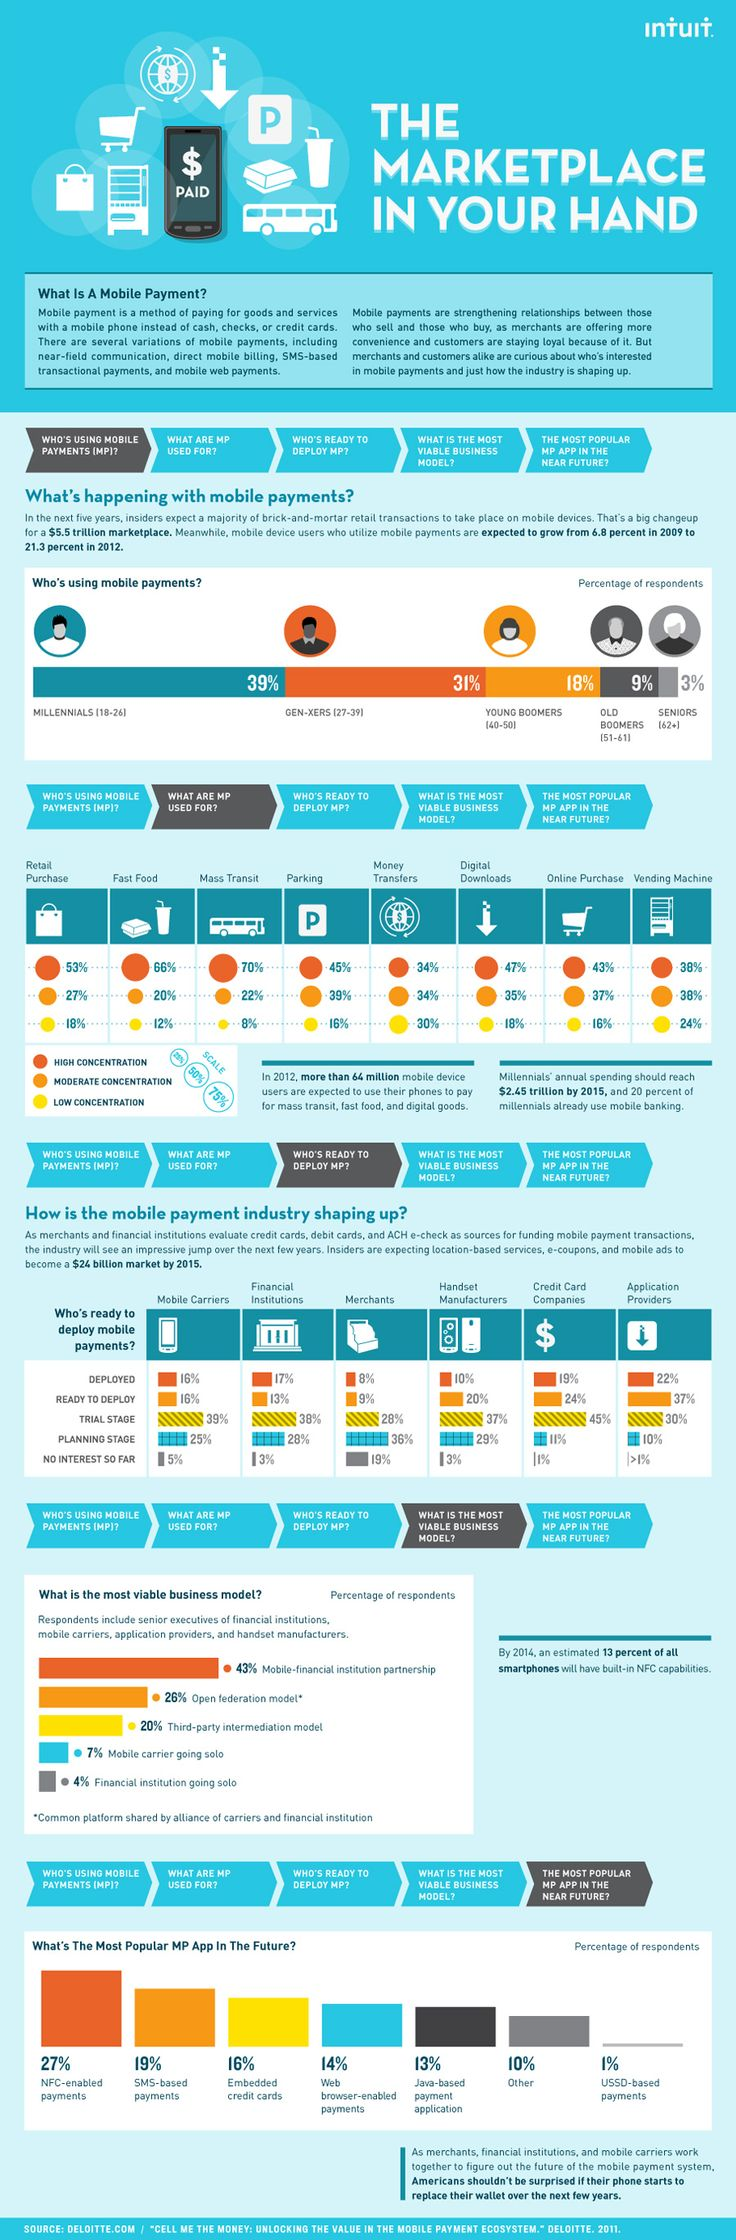 Check out this infographic from Intuit for a crash course on mobile payment technology and its expected growth.